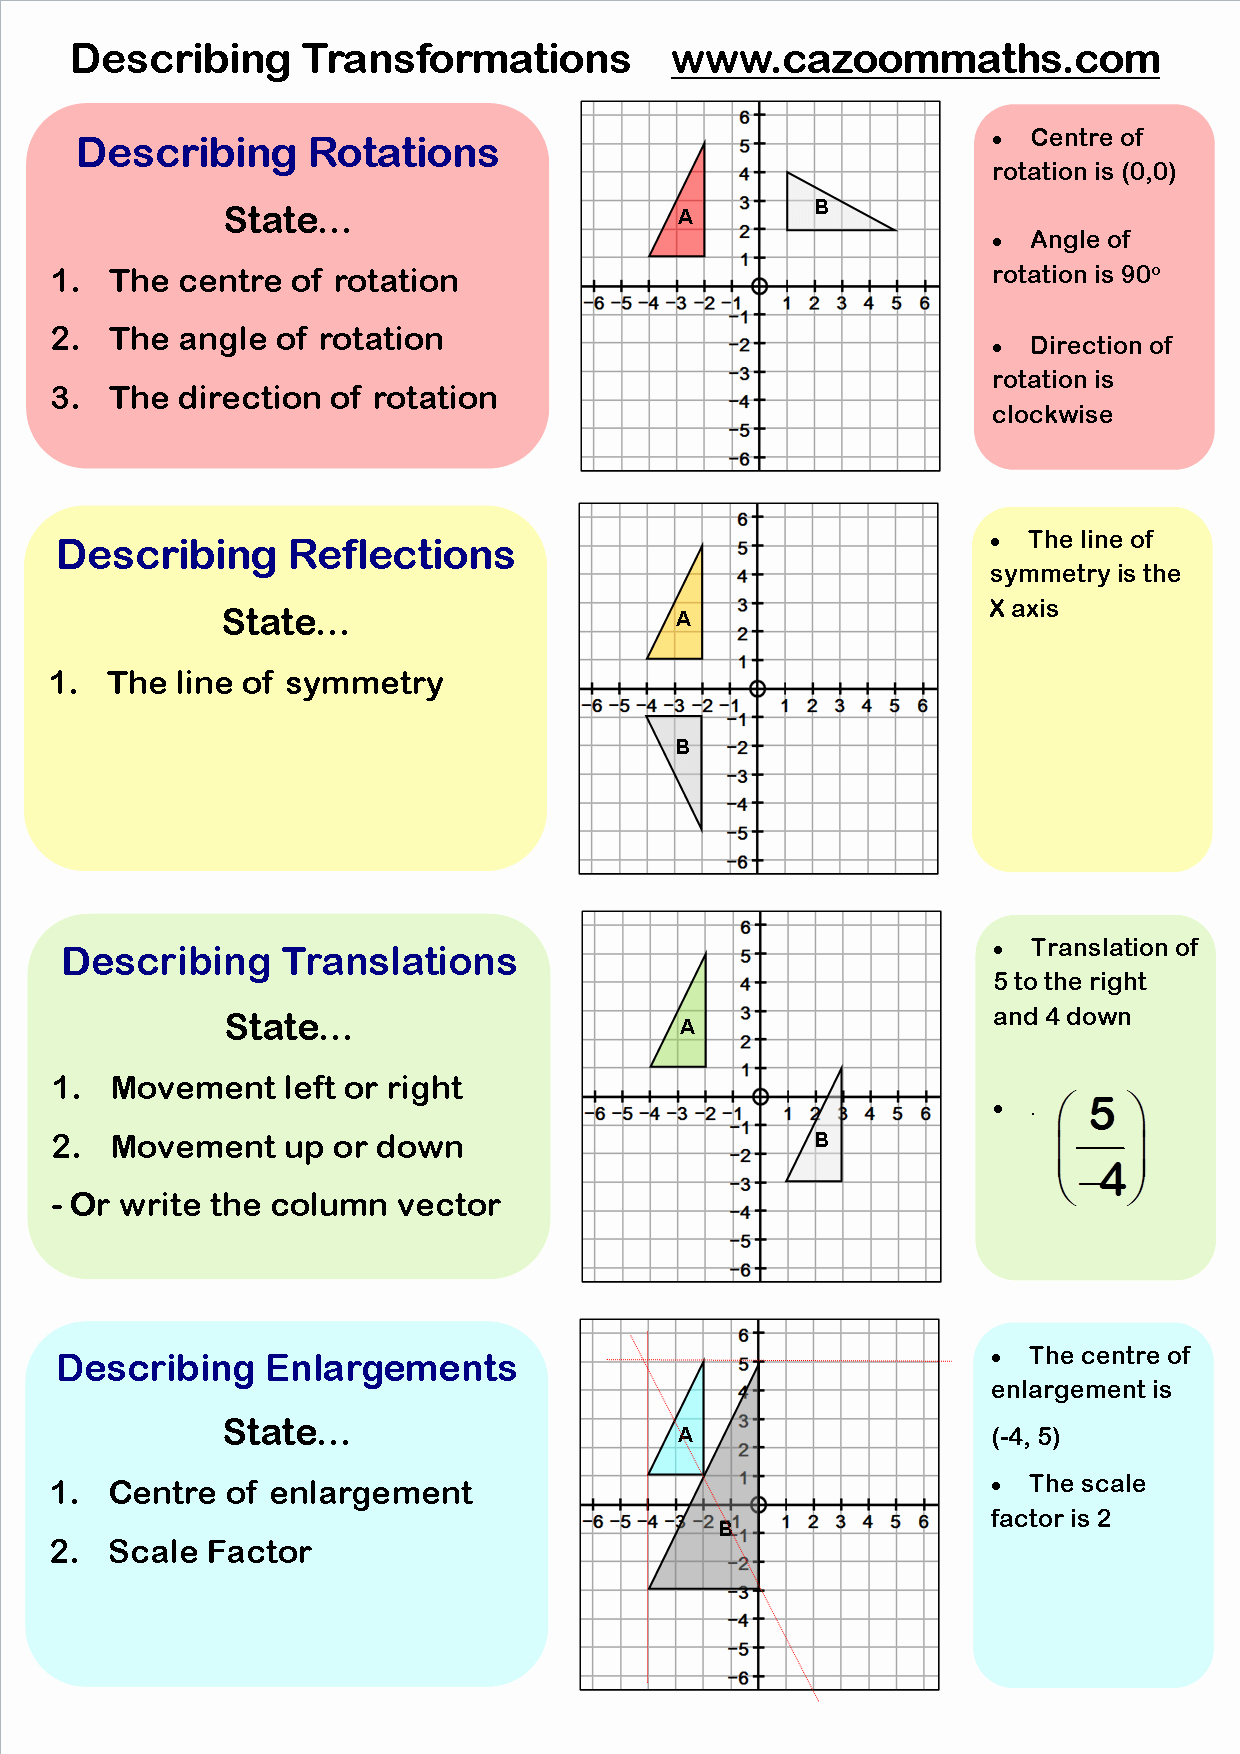 Geometry Transformations Worksheet Pdf Elegant Cazoom Maths Worksheets Maths Worksheets